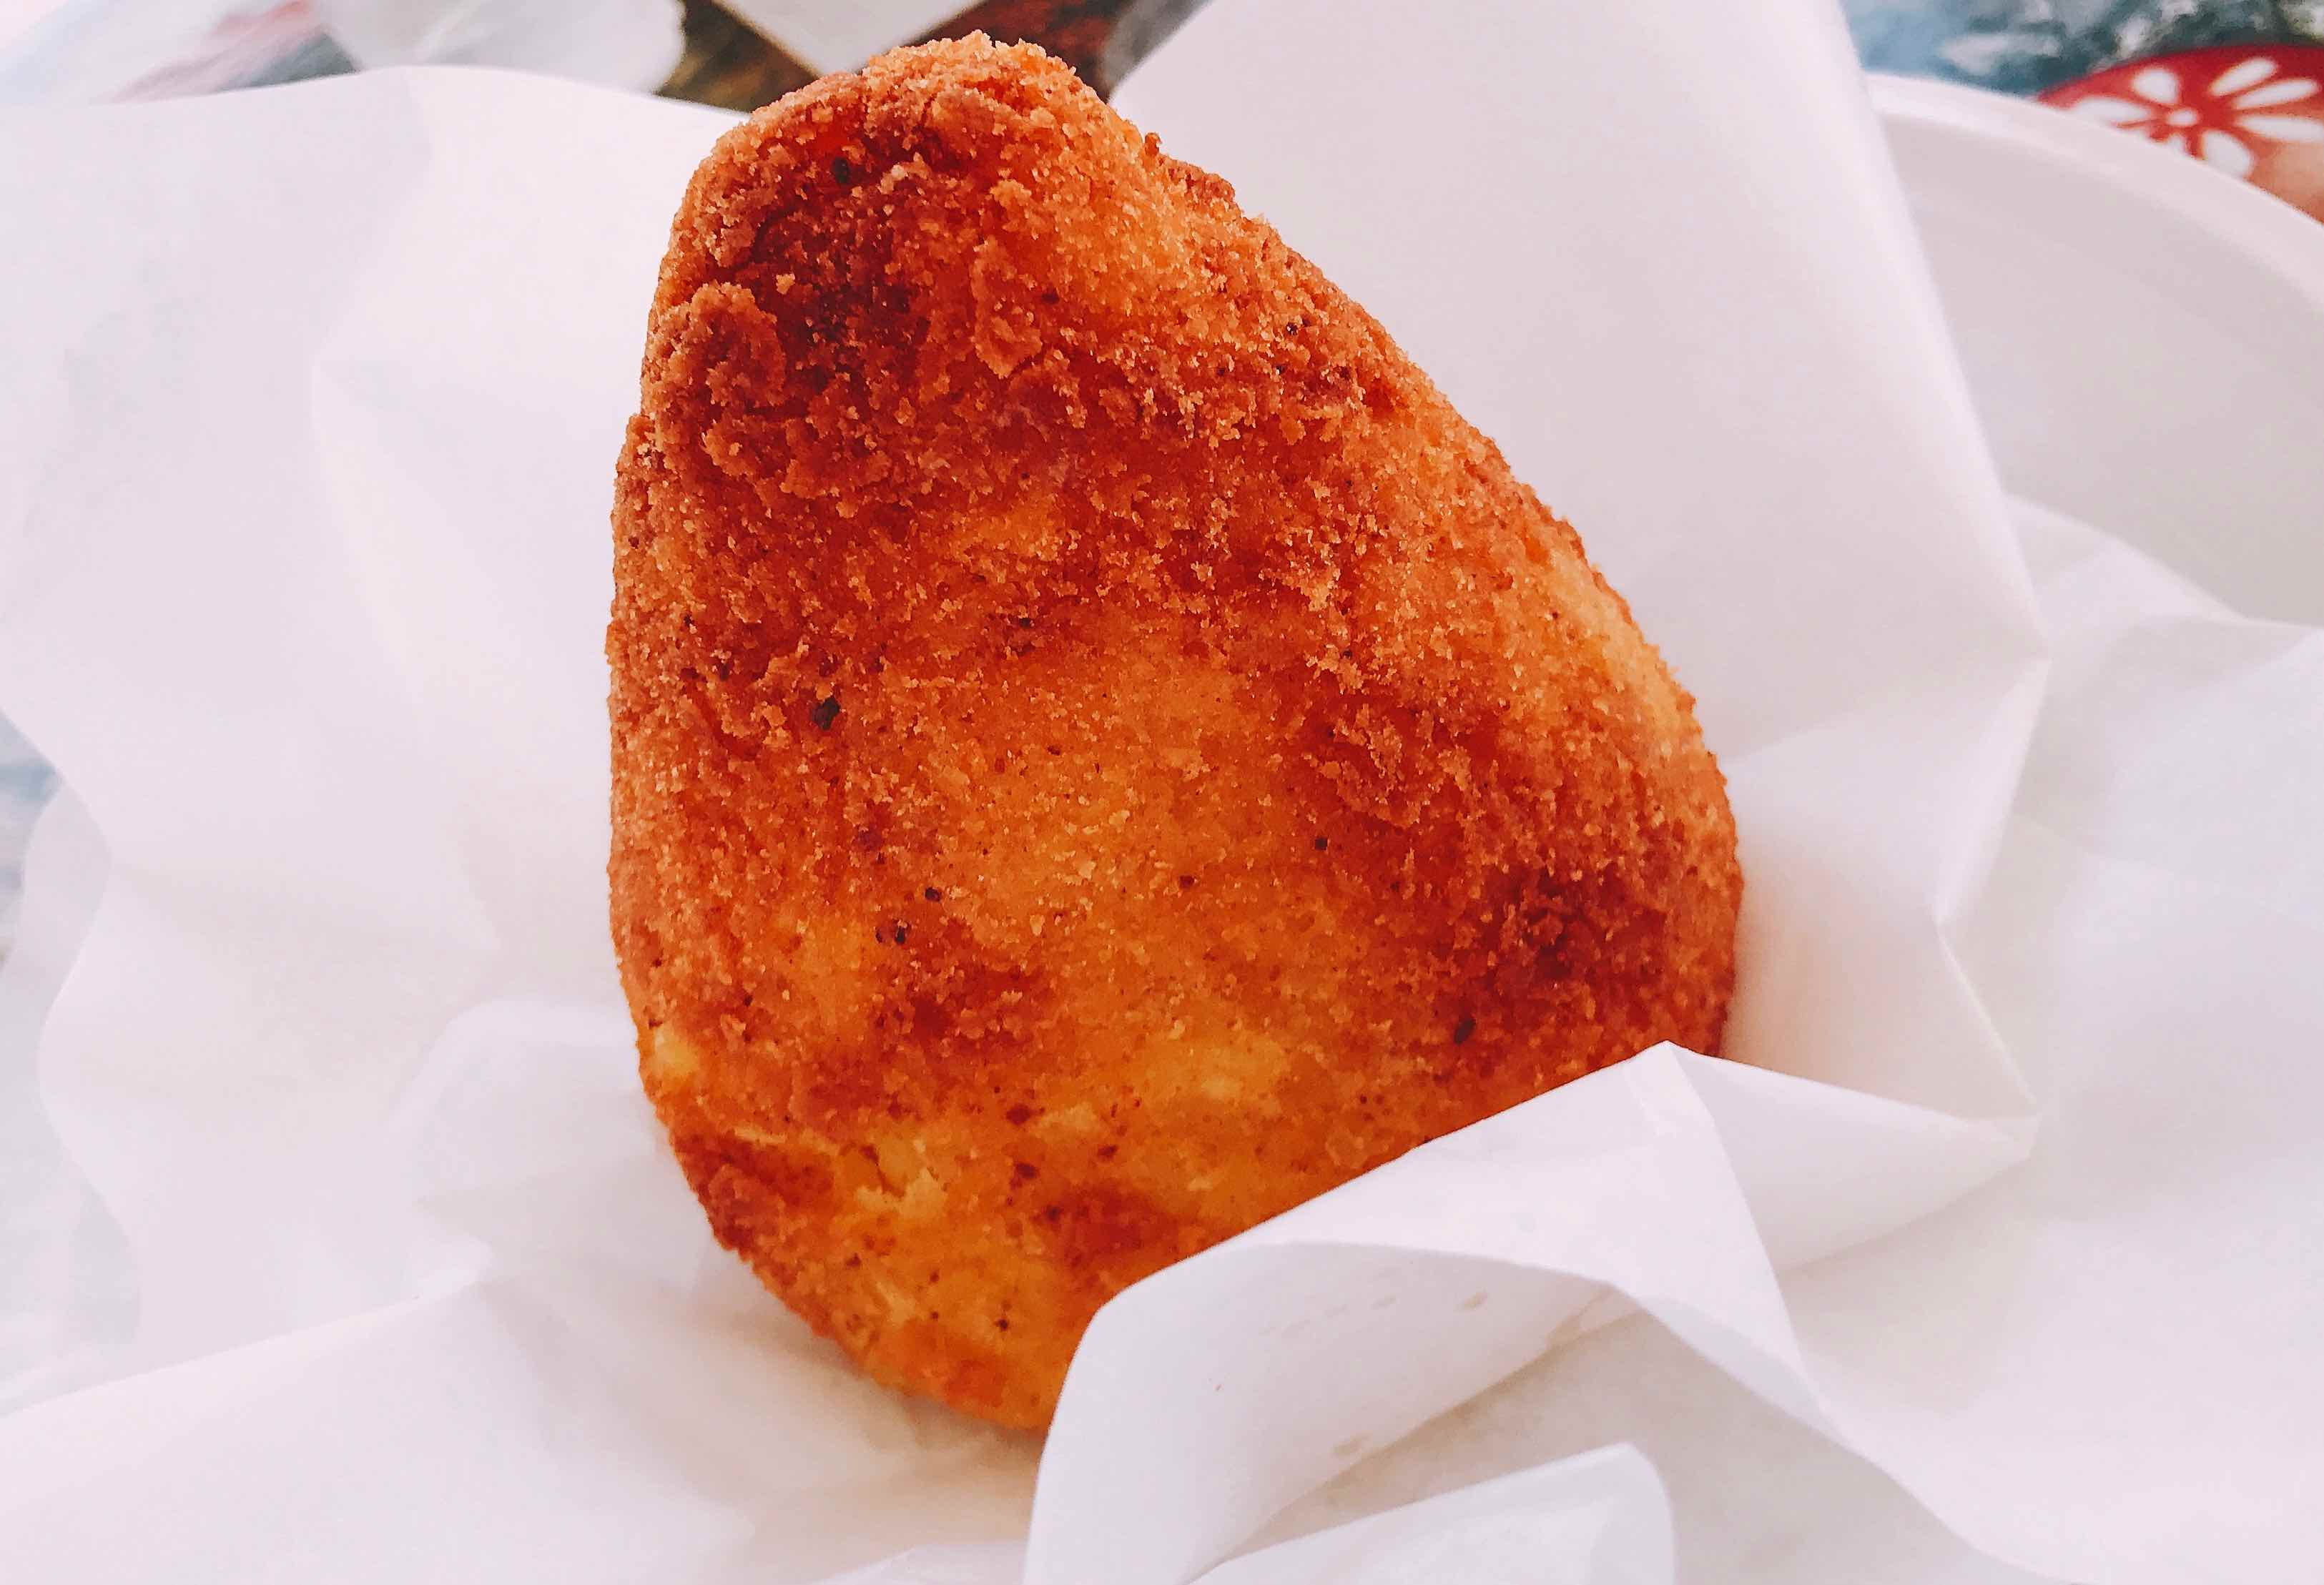 Pear shaped arancini